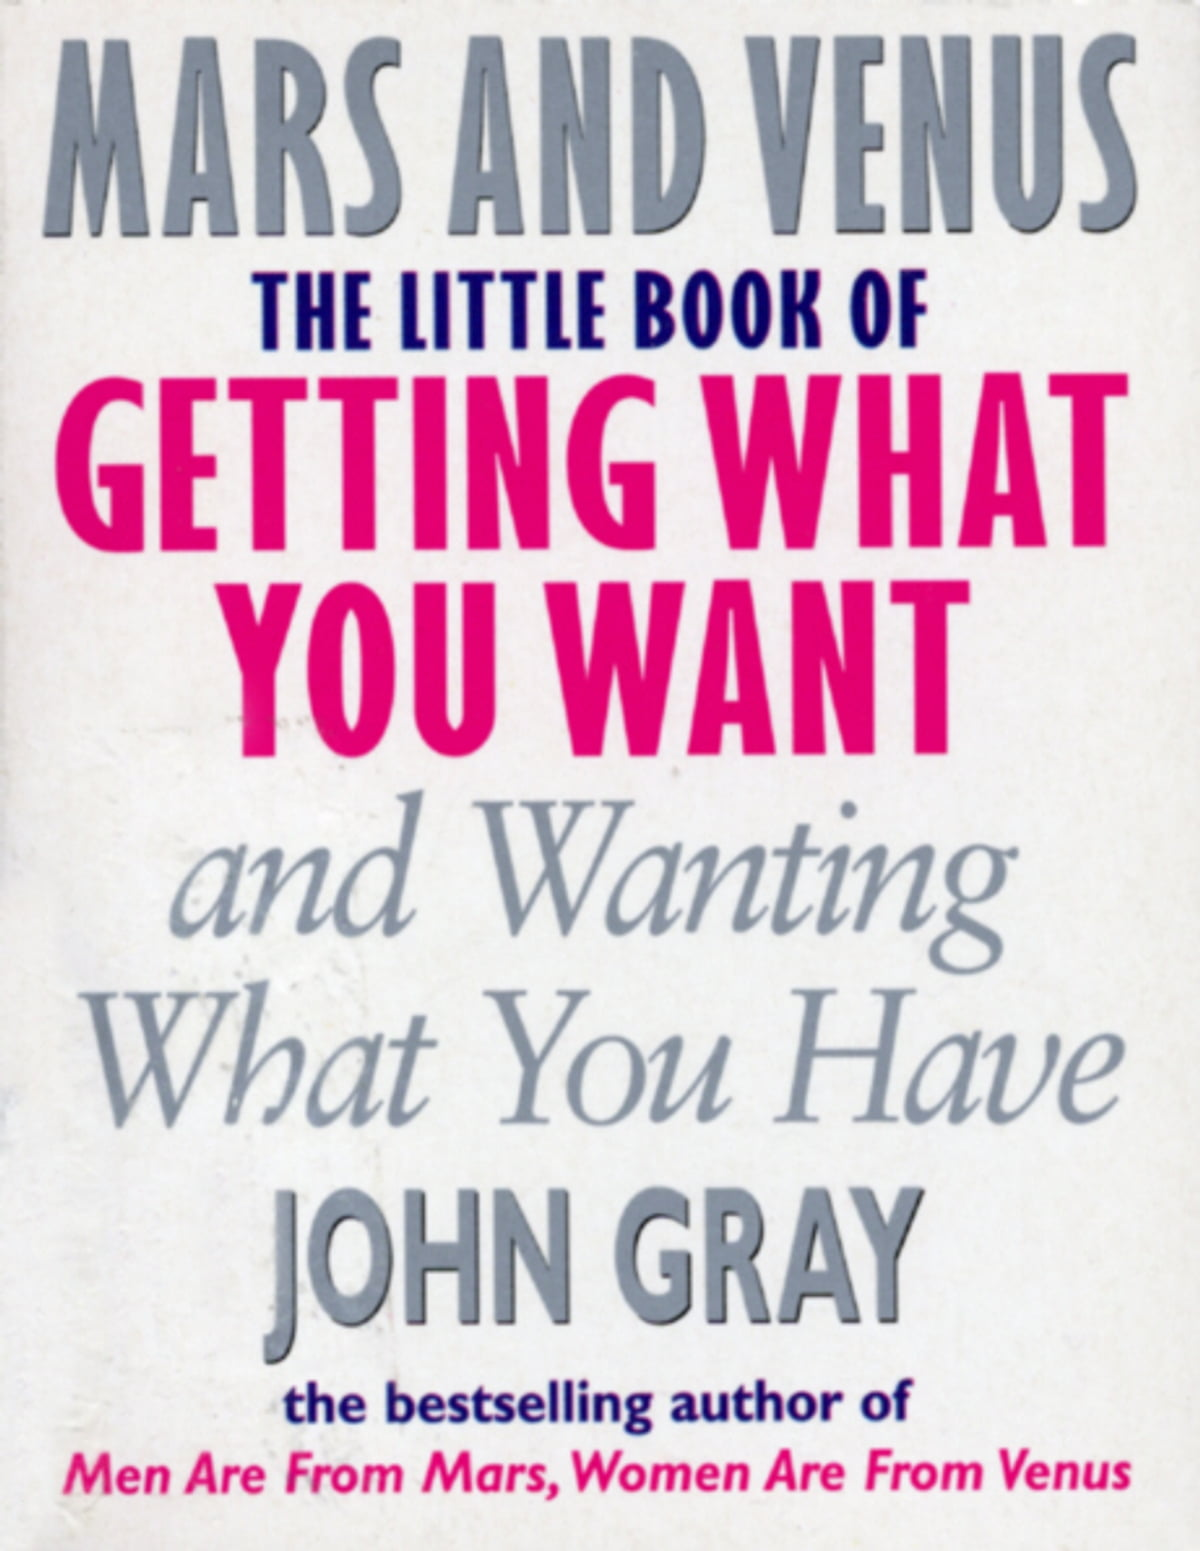 The Little Book Of Getting What You Want And Wanting What You Have eBook by  John Gray - 9781448116249 | Rakuten Kobo